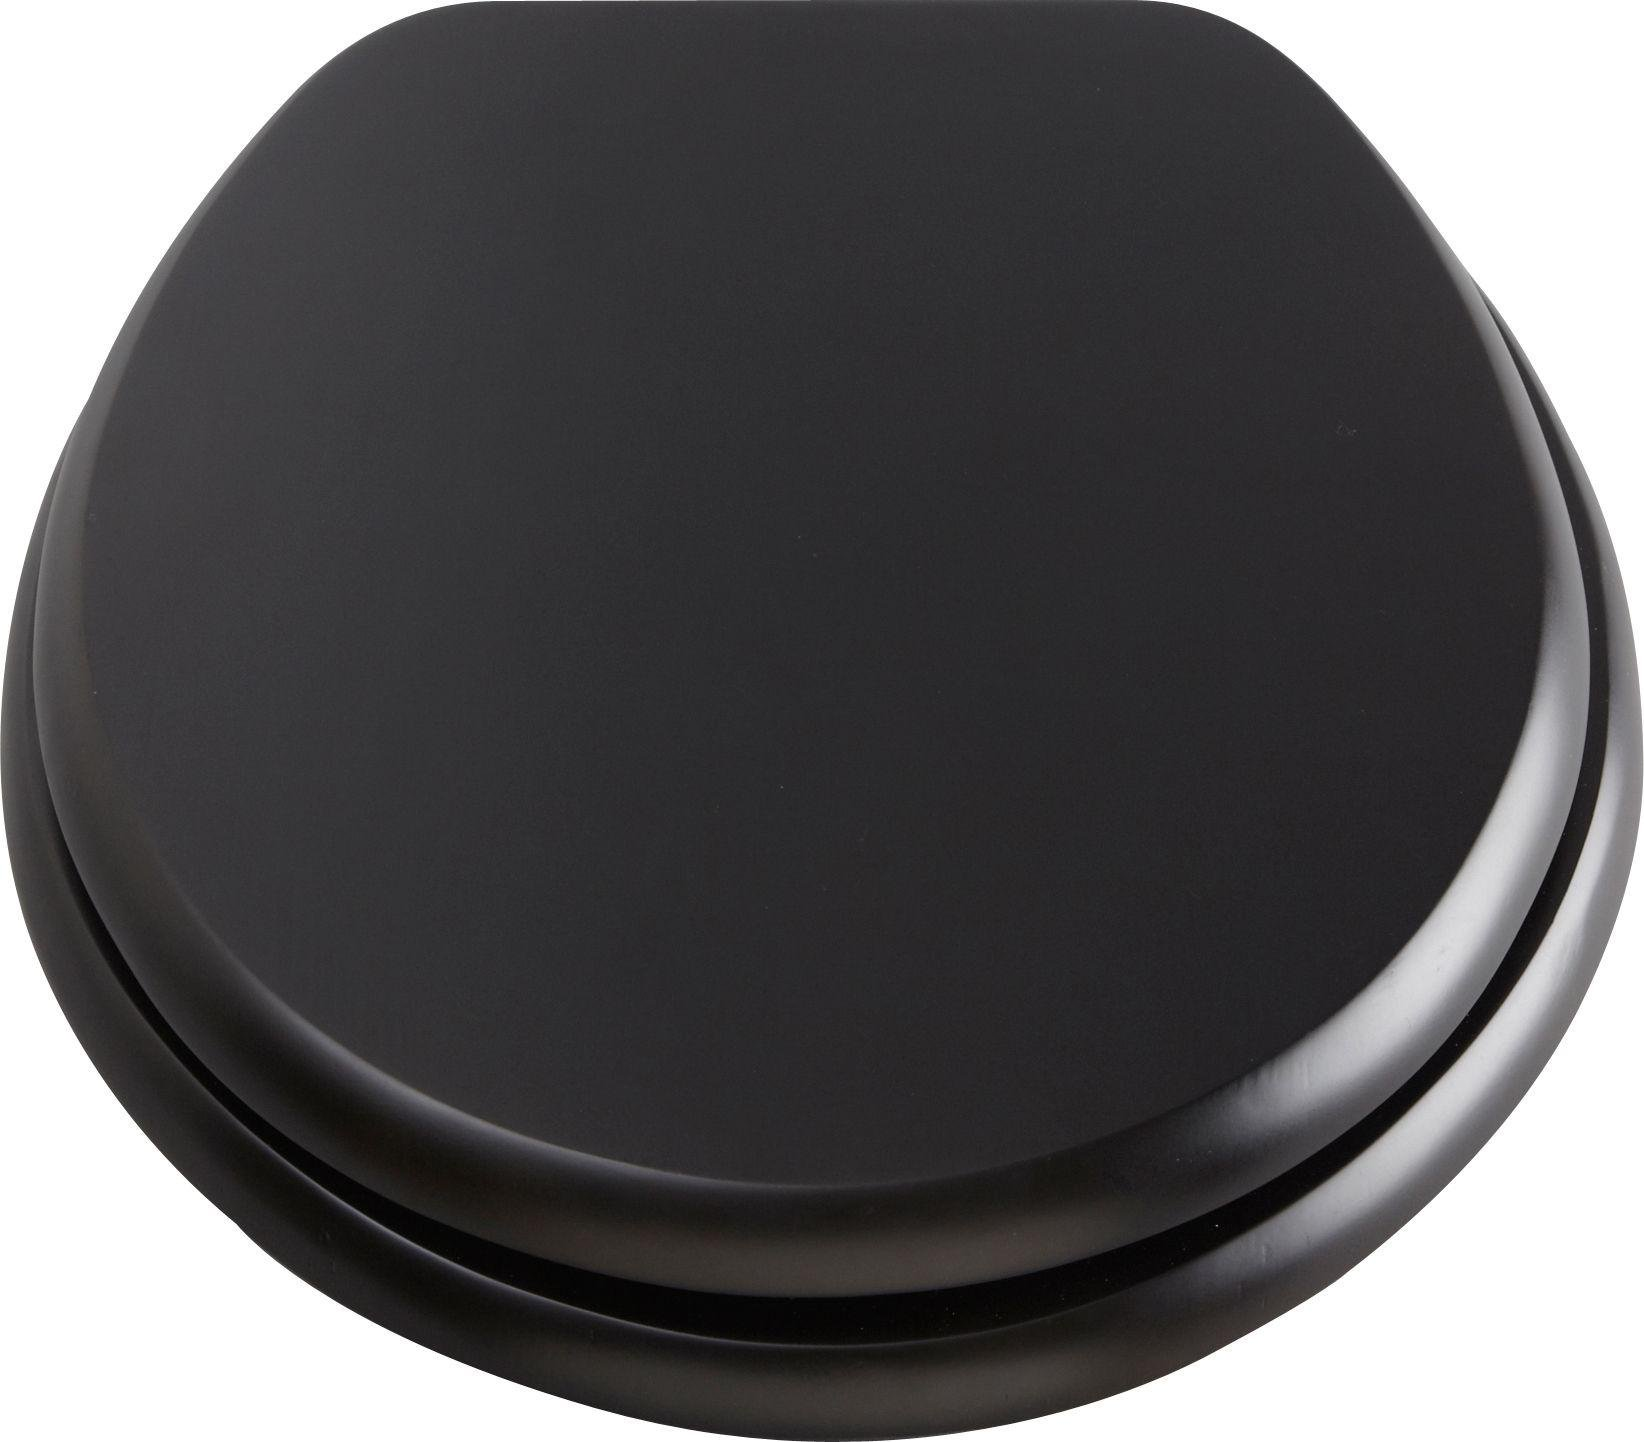 black soft toilet seat. buy collection solid wood slow close toilet seat - black at argos.co.uk your online shop for seats, bathroom accessories, home furnishings, soft t